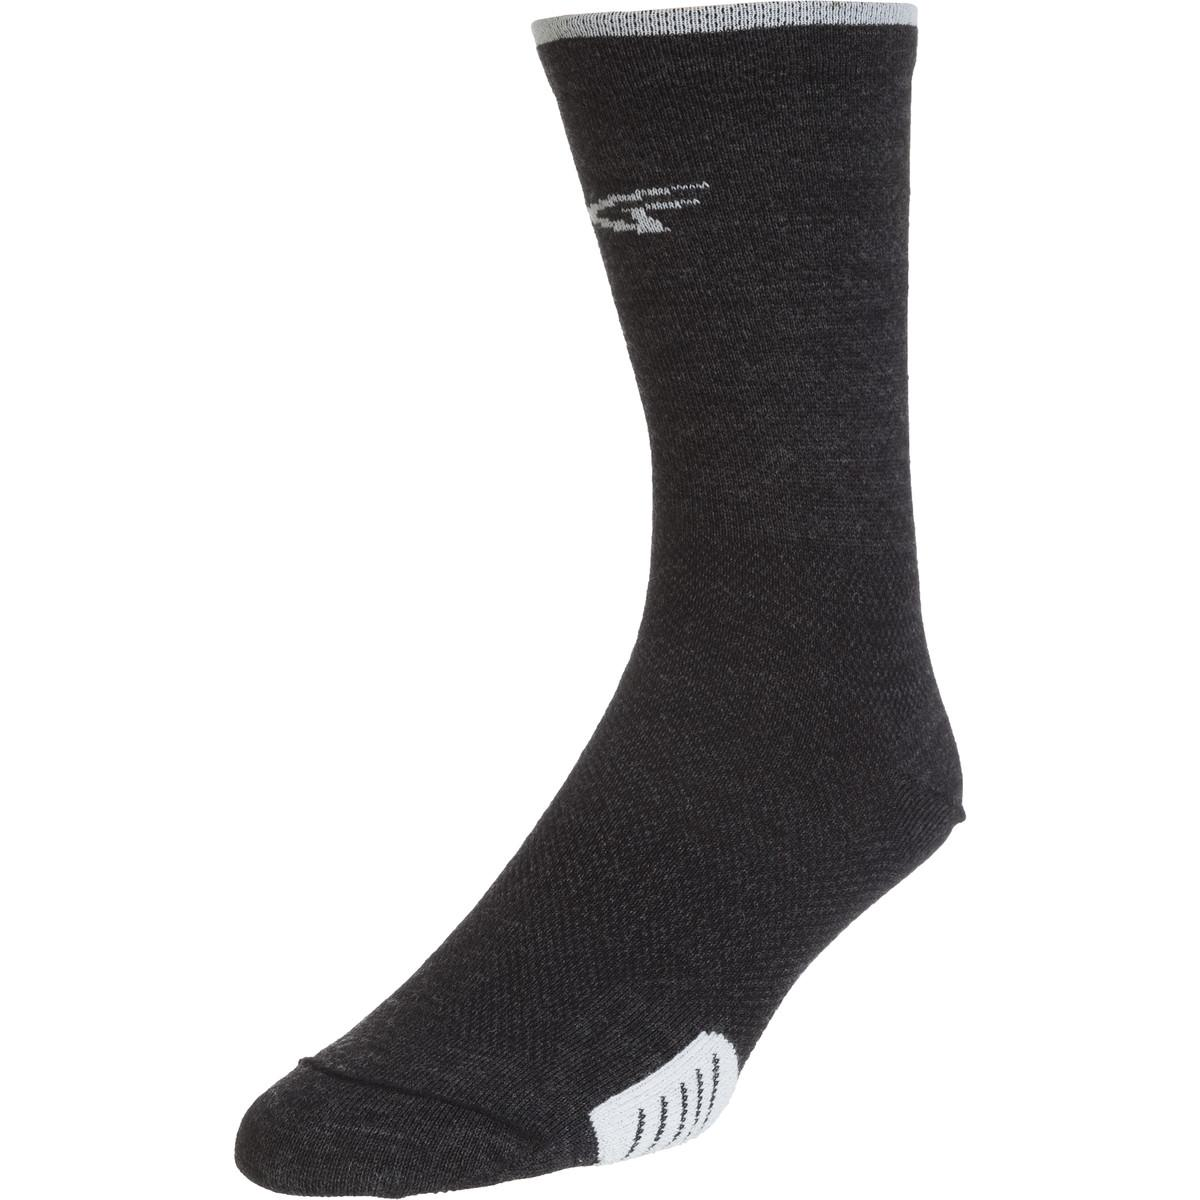 DeFeet Cyclismo Wool 5in Socks Charcoal/White Stripe, XL